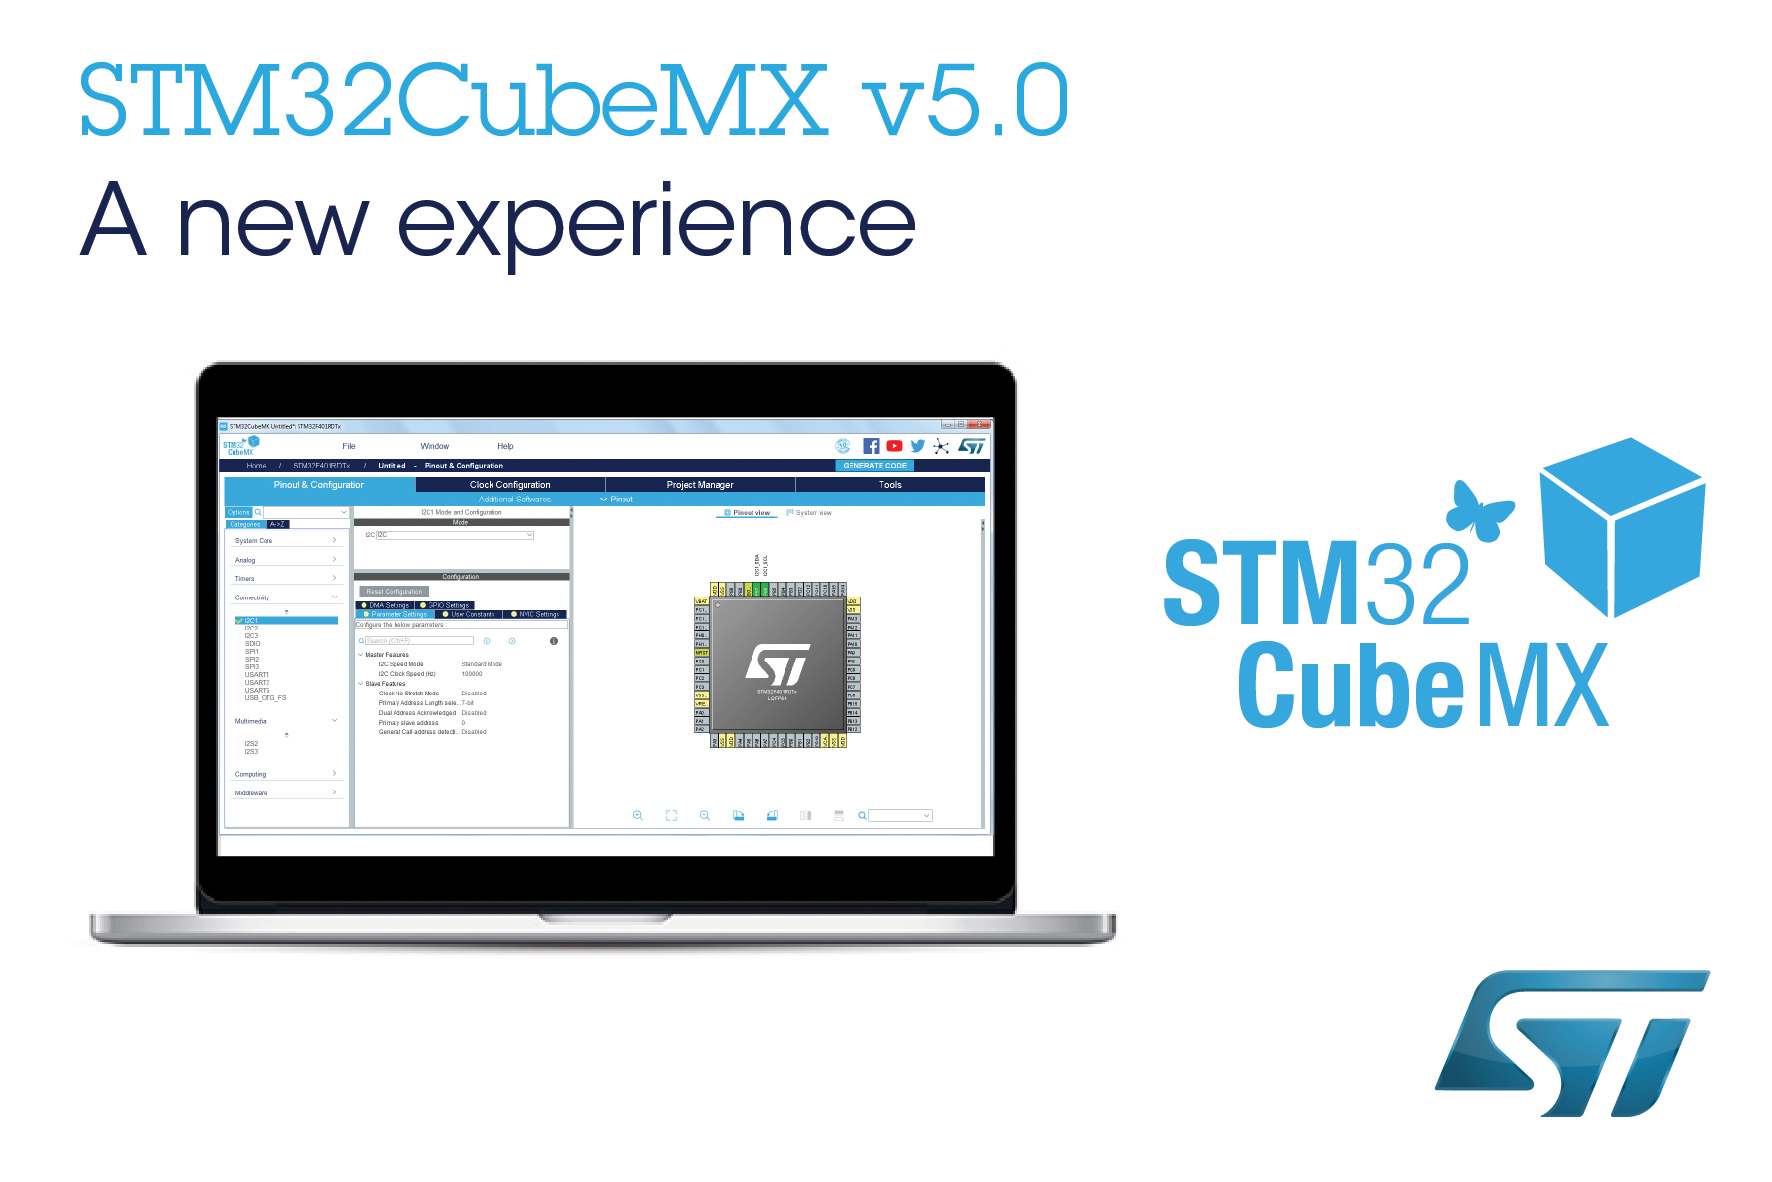 Electronica Medium Font Stmicroelectronics Updates Stm32cubemx Mcu Configurator With Multi